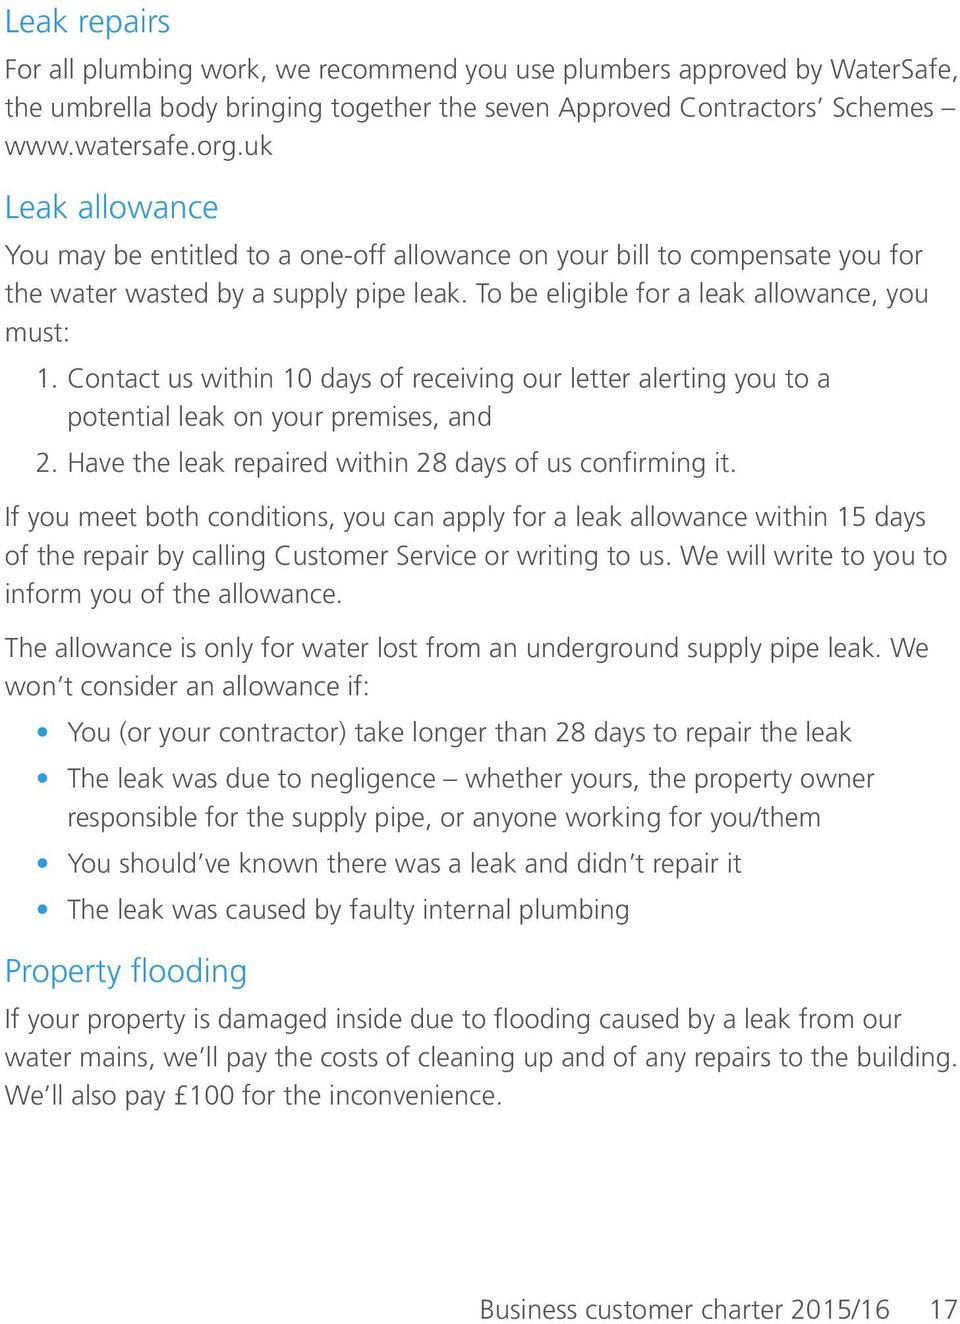 Contact us within 10 days of receiving our letter alerting you to a potential leak on your premises, and 2. Have the leak repaired within 28 days of us confirming it.